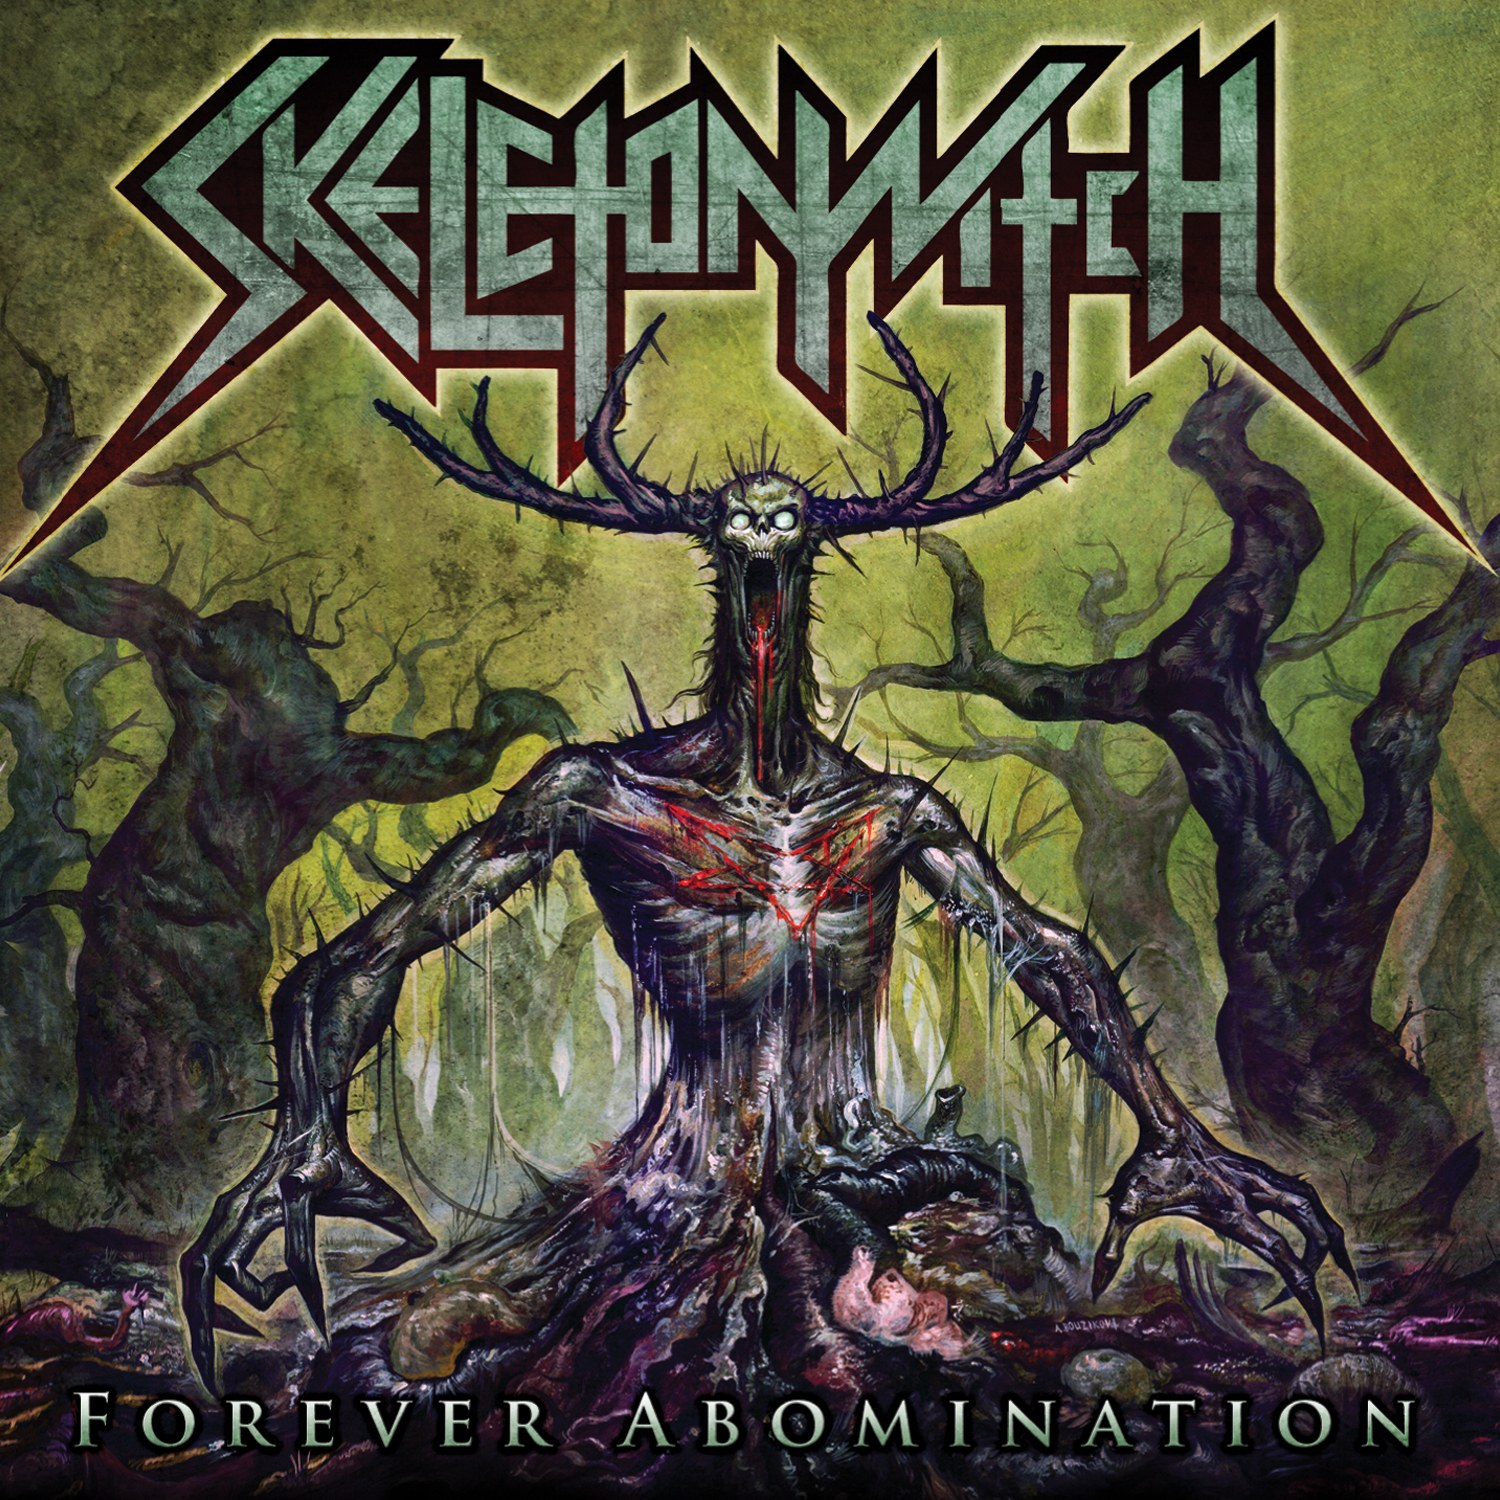 Review for Skeletonwitch - Forever Abomination